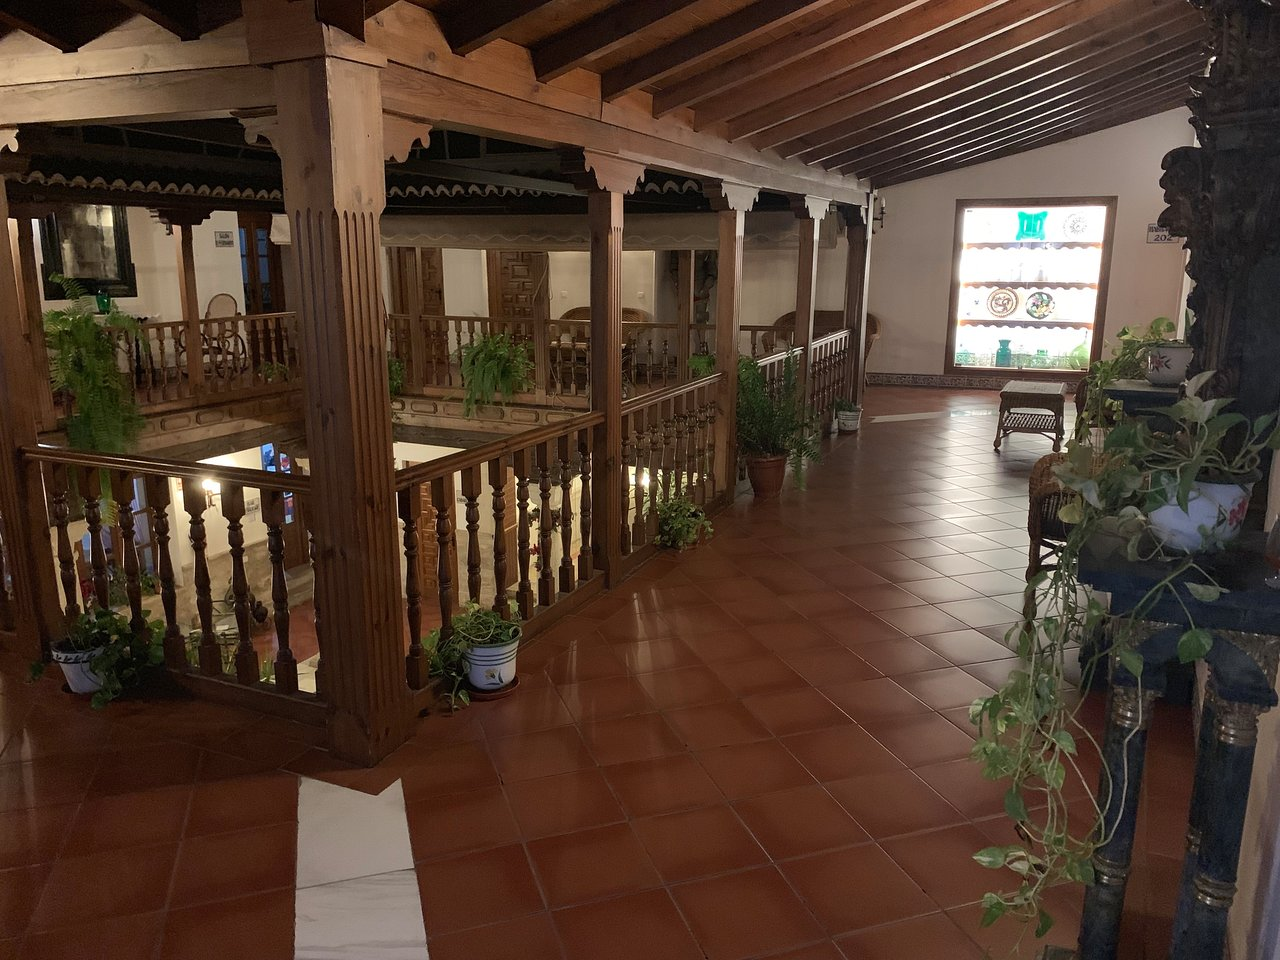 Hotel Casa Palacio Prices Reviews Santa Cruz De Mudela Spain Tripadvisor